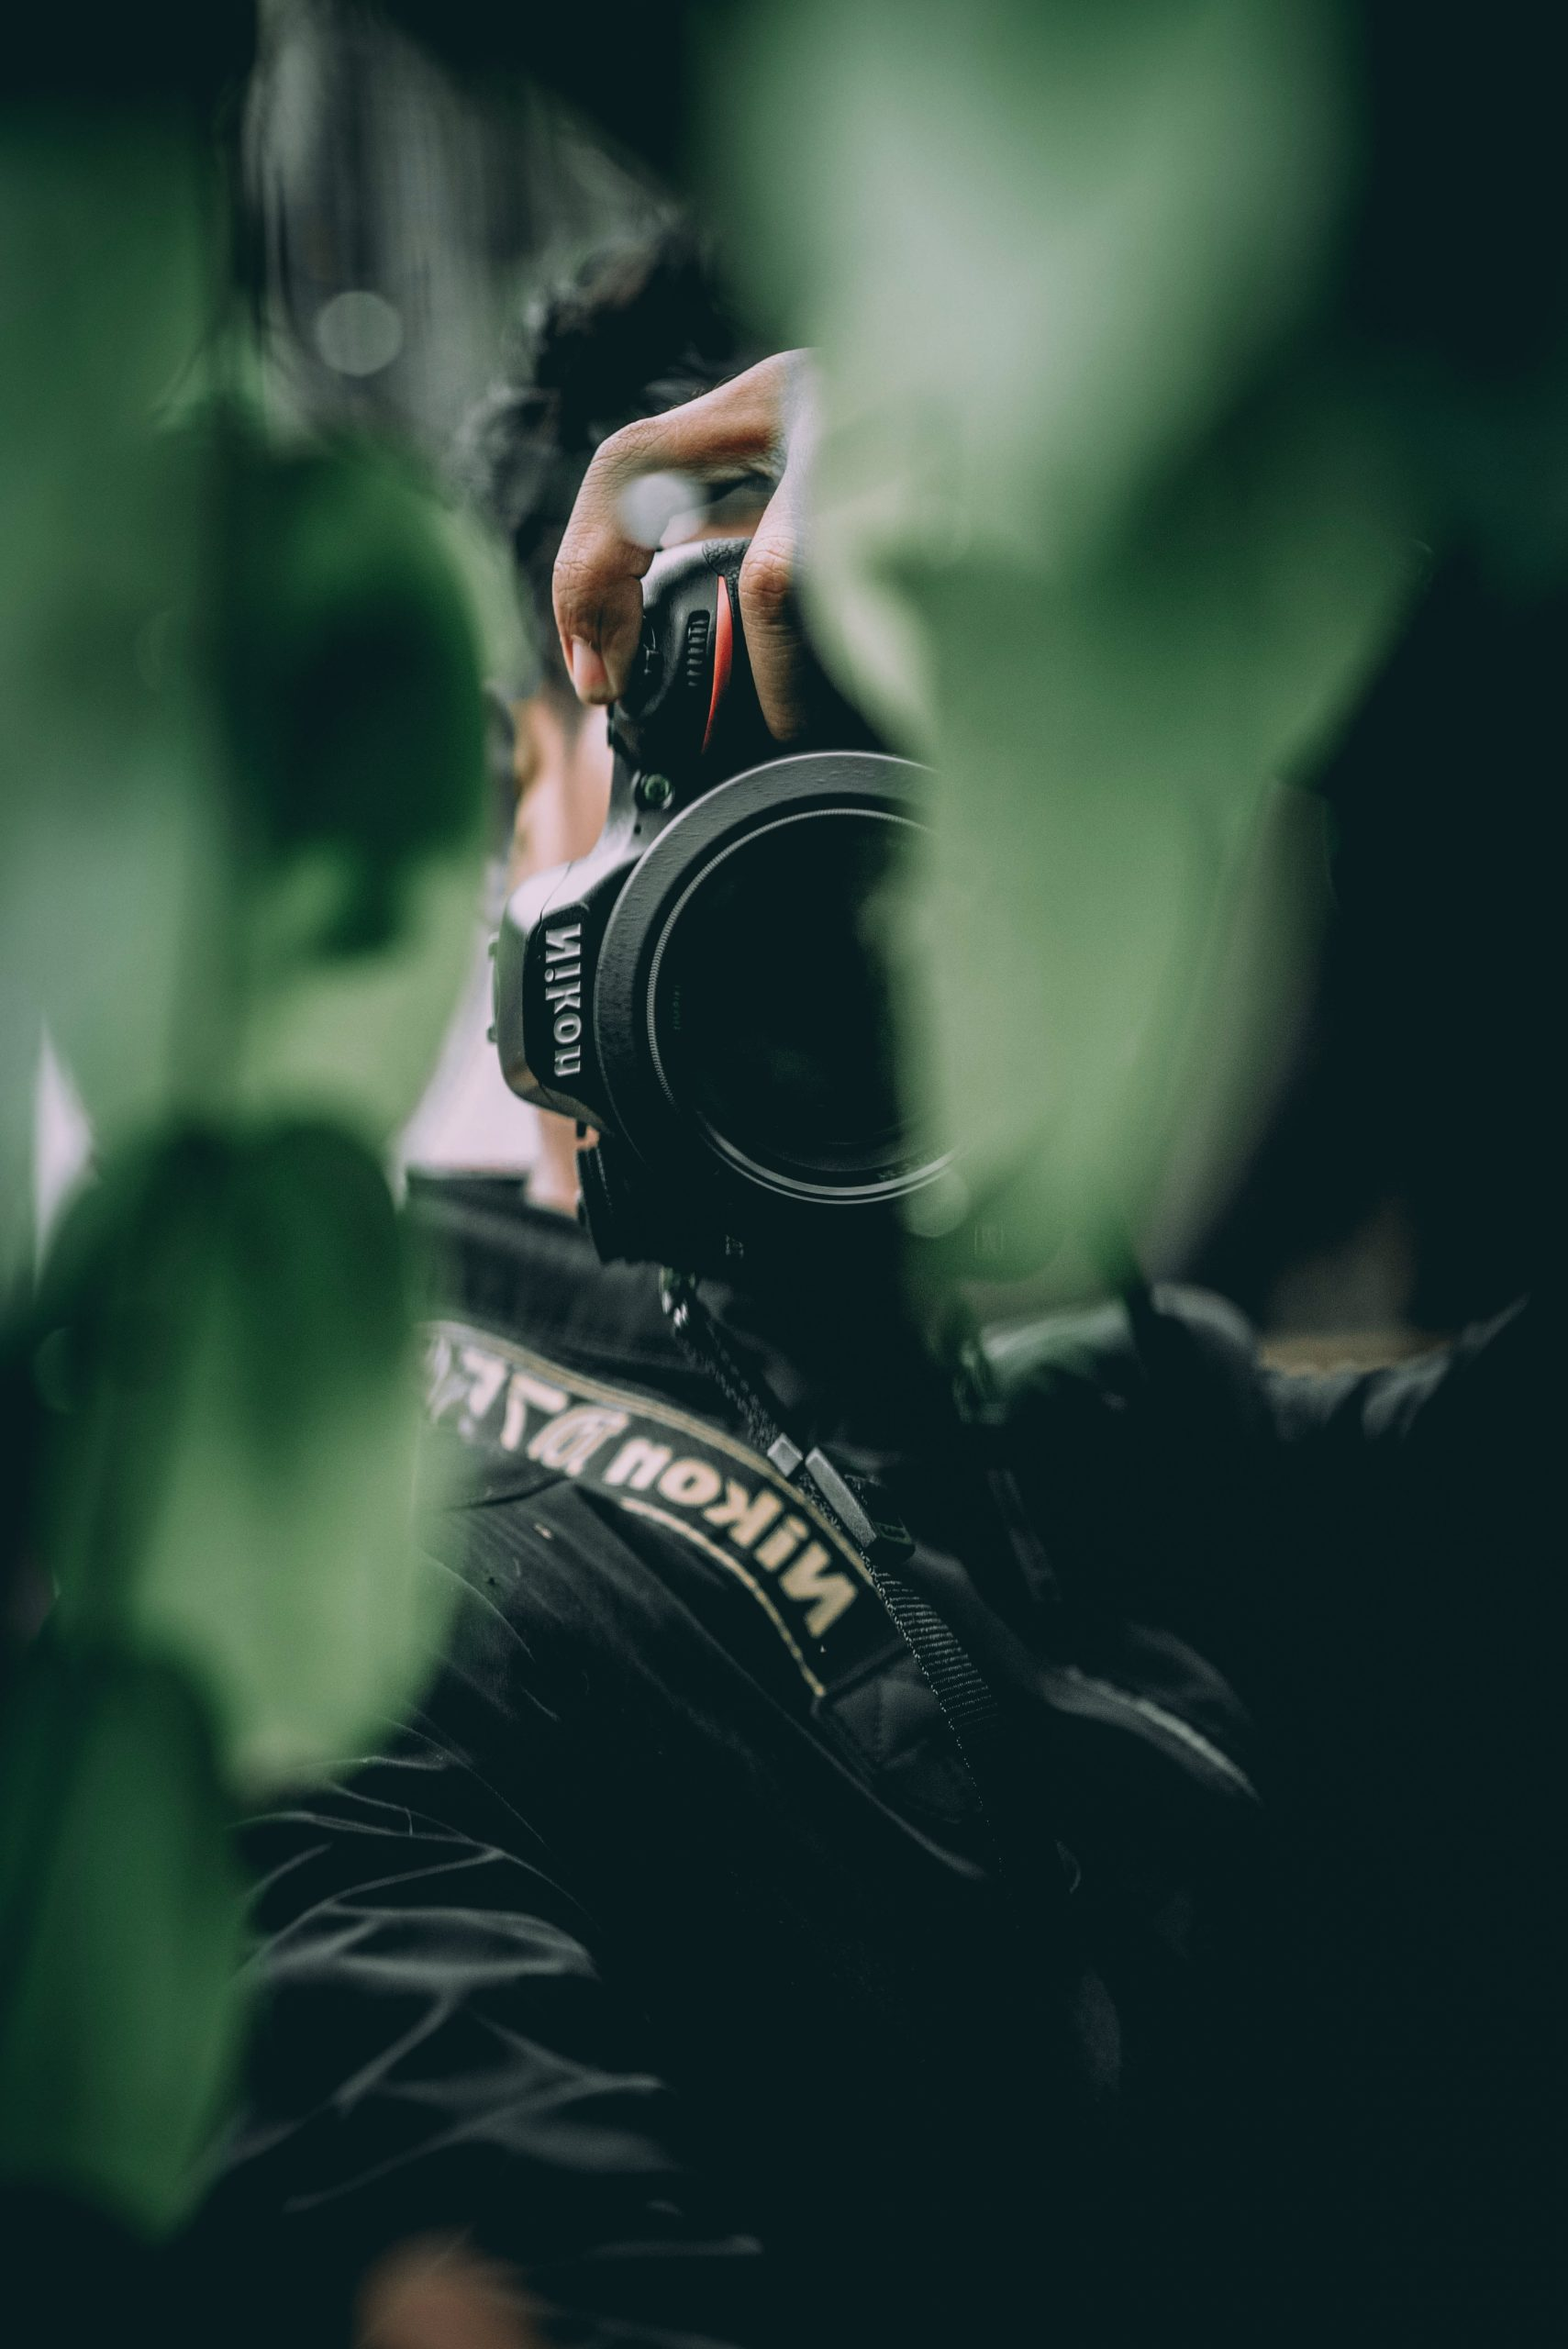 selective focus photography of person taking photo using DSLR camera